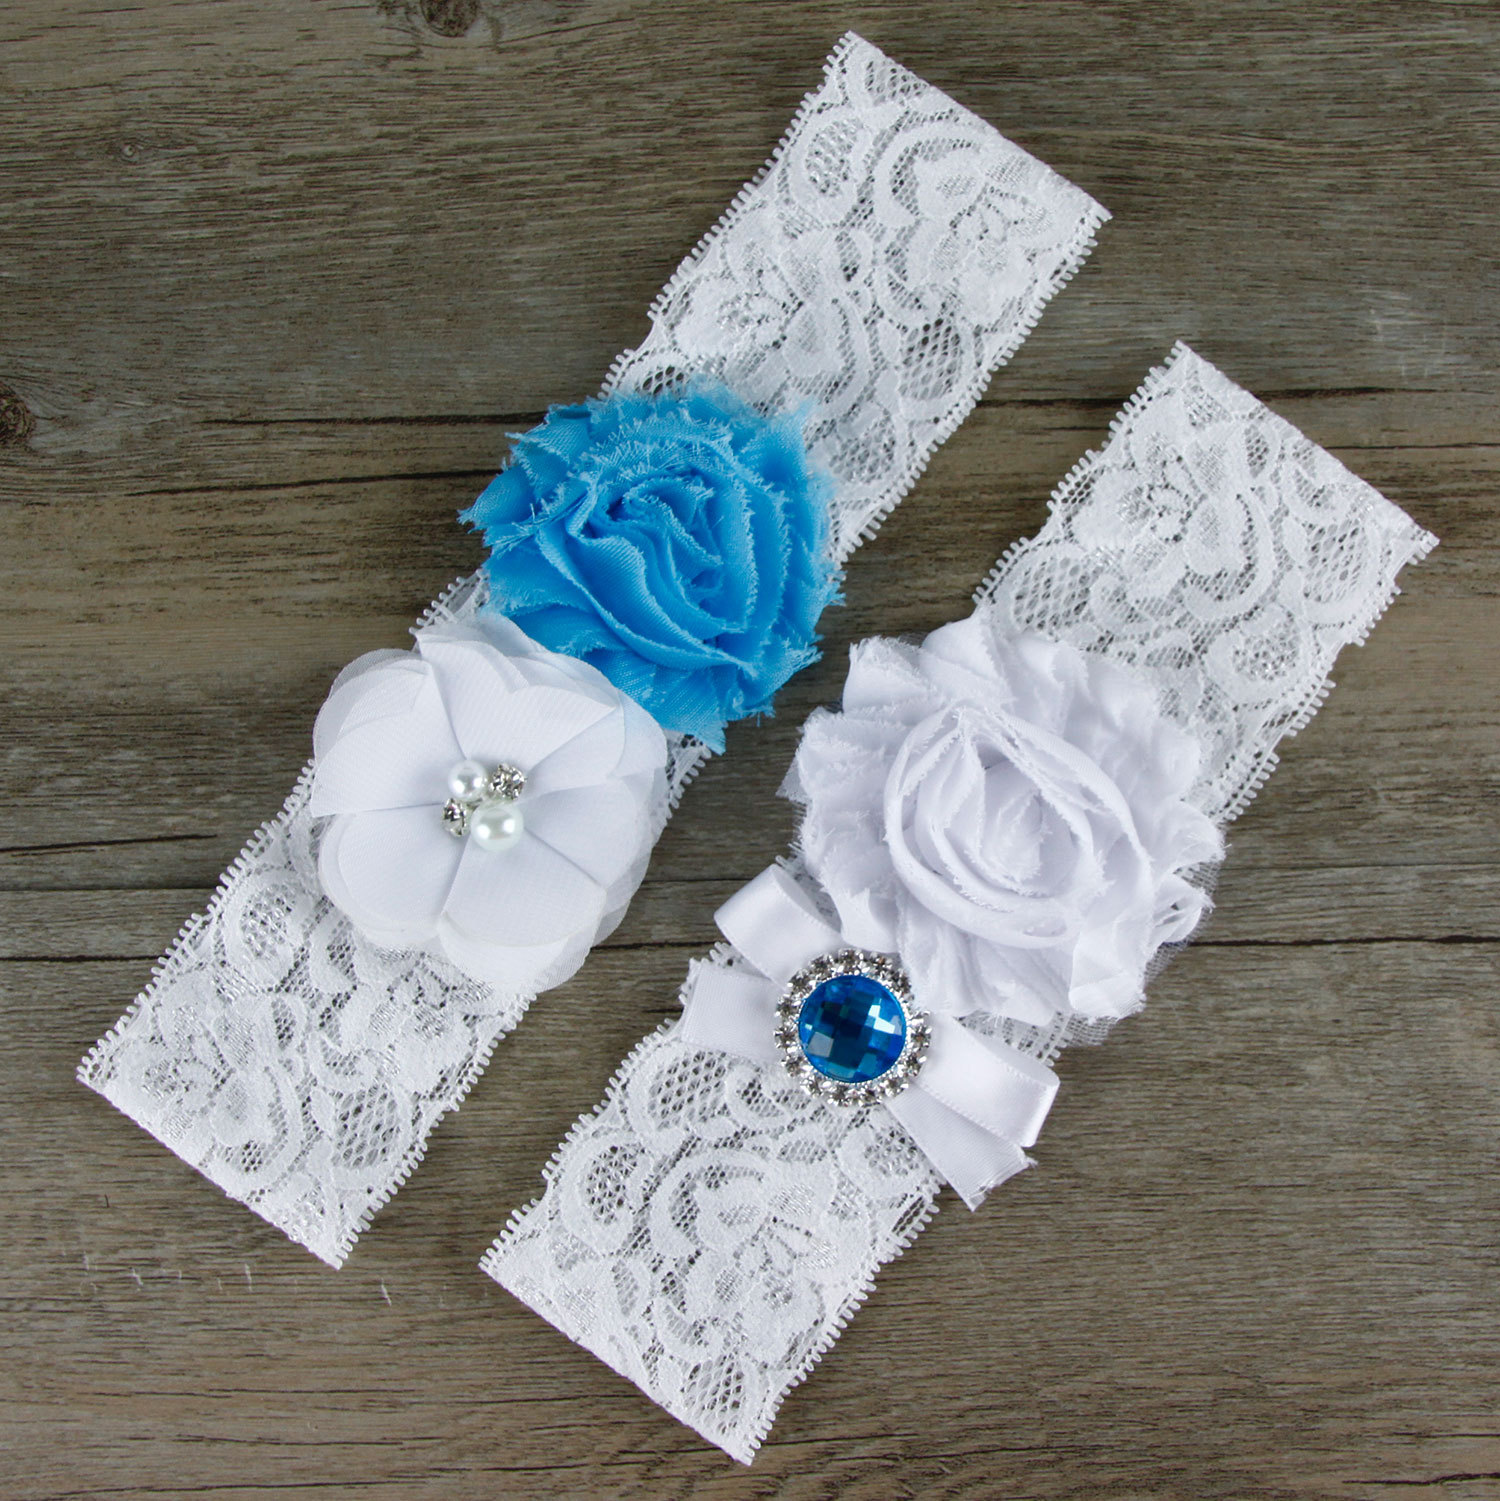 Why Two Garters For Wedding: Hot Sale 2Pcs Wedding Garter Set Lace Flower Bridal Garter